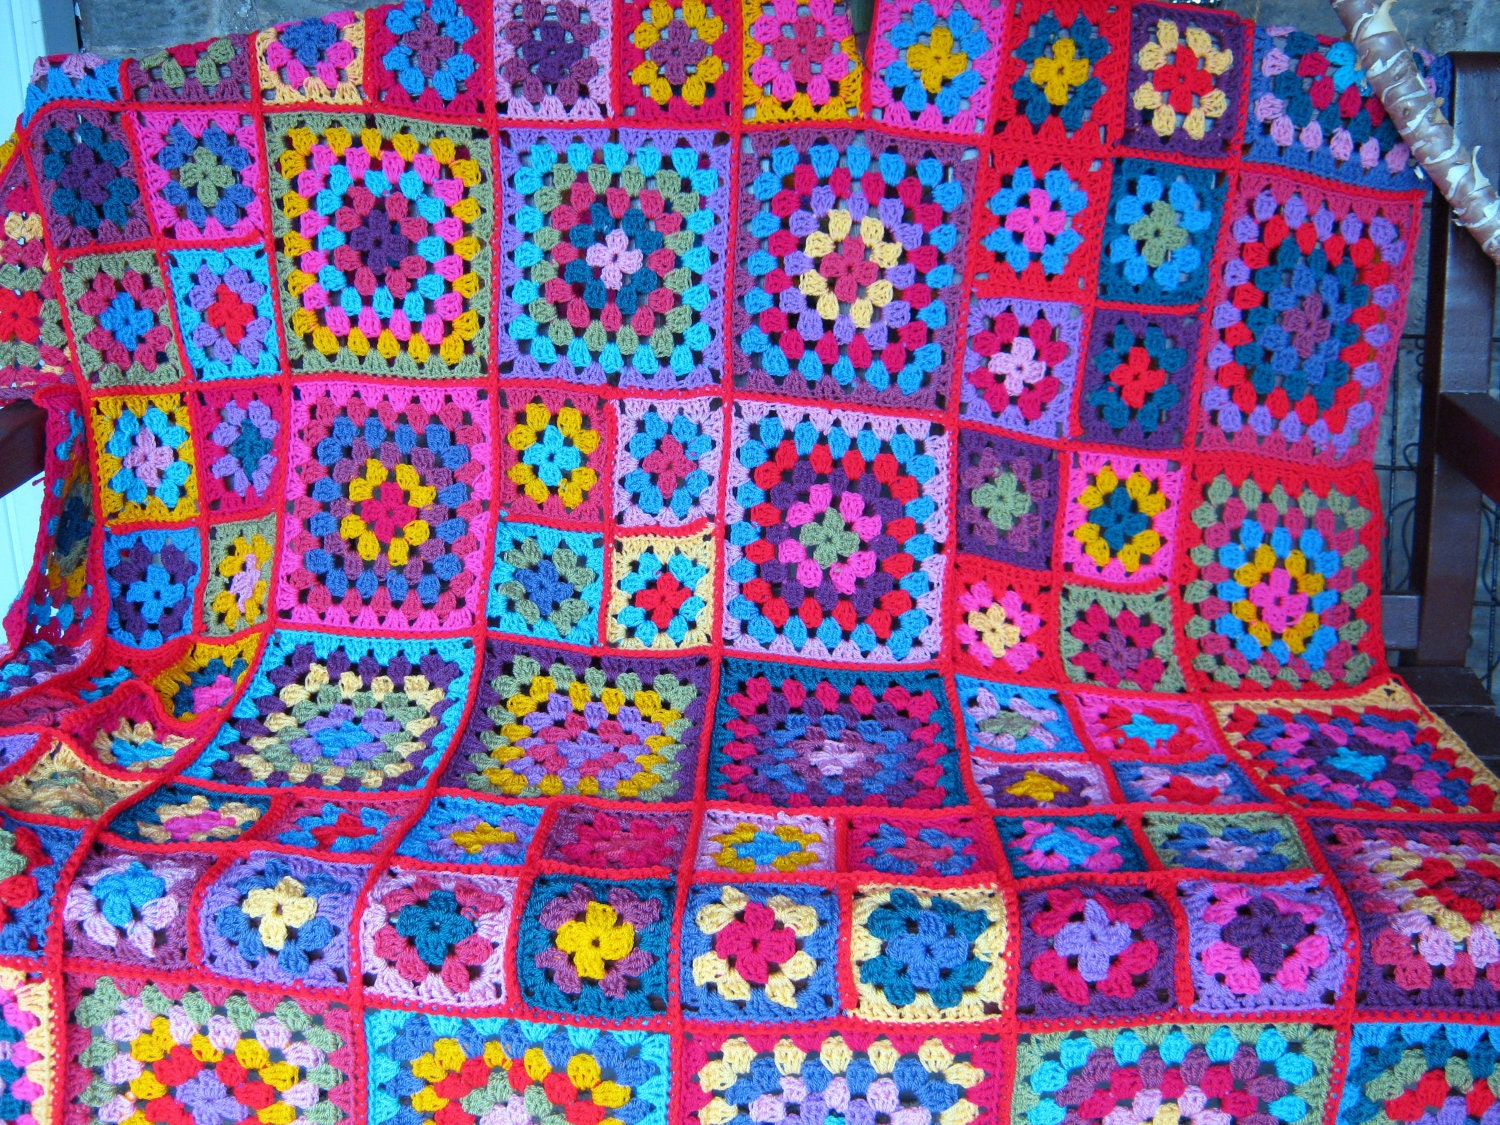 Dolly Vintage Retro Style Granny Square Blanket Afghan CROCHET PATTERN PDF